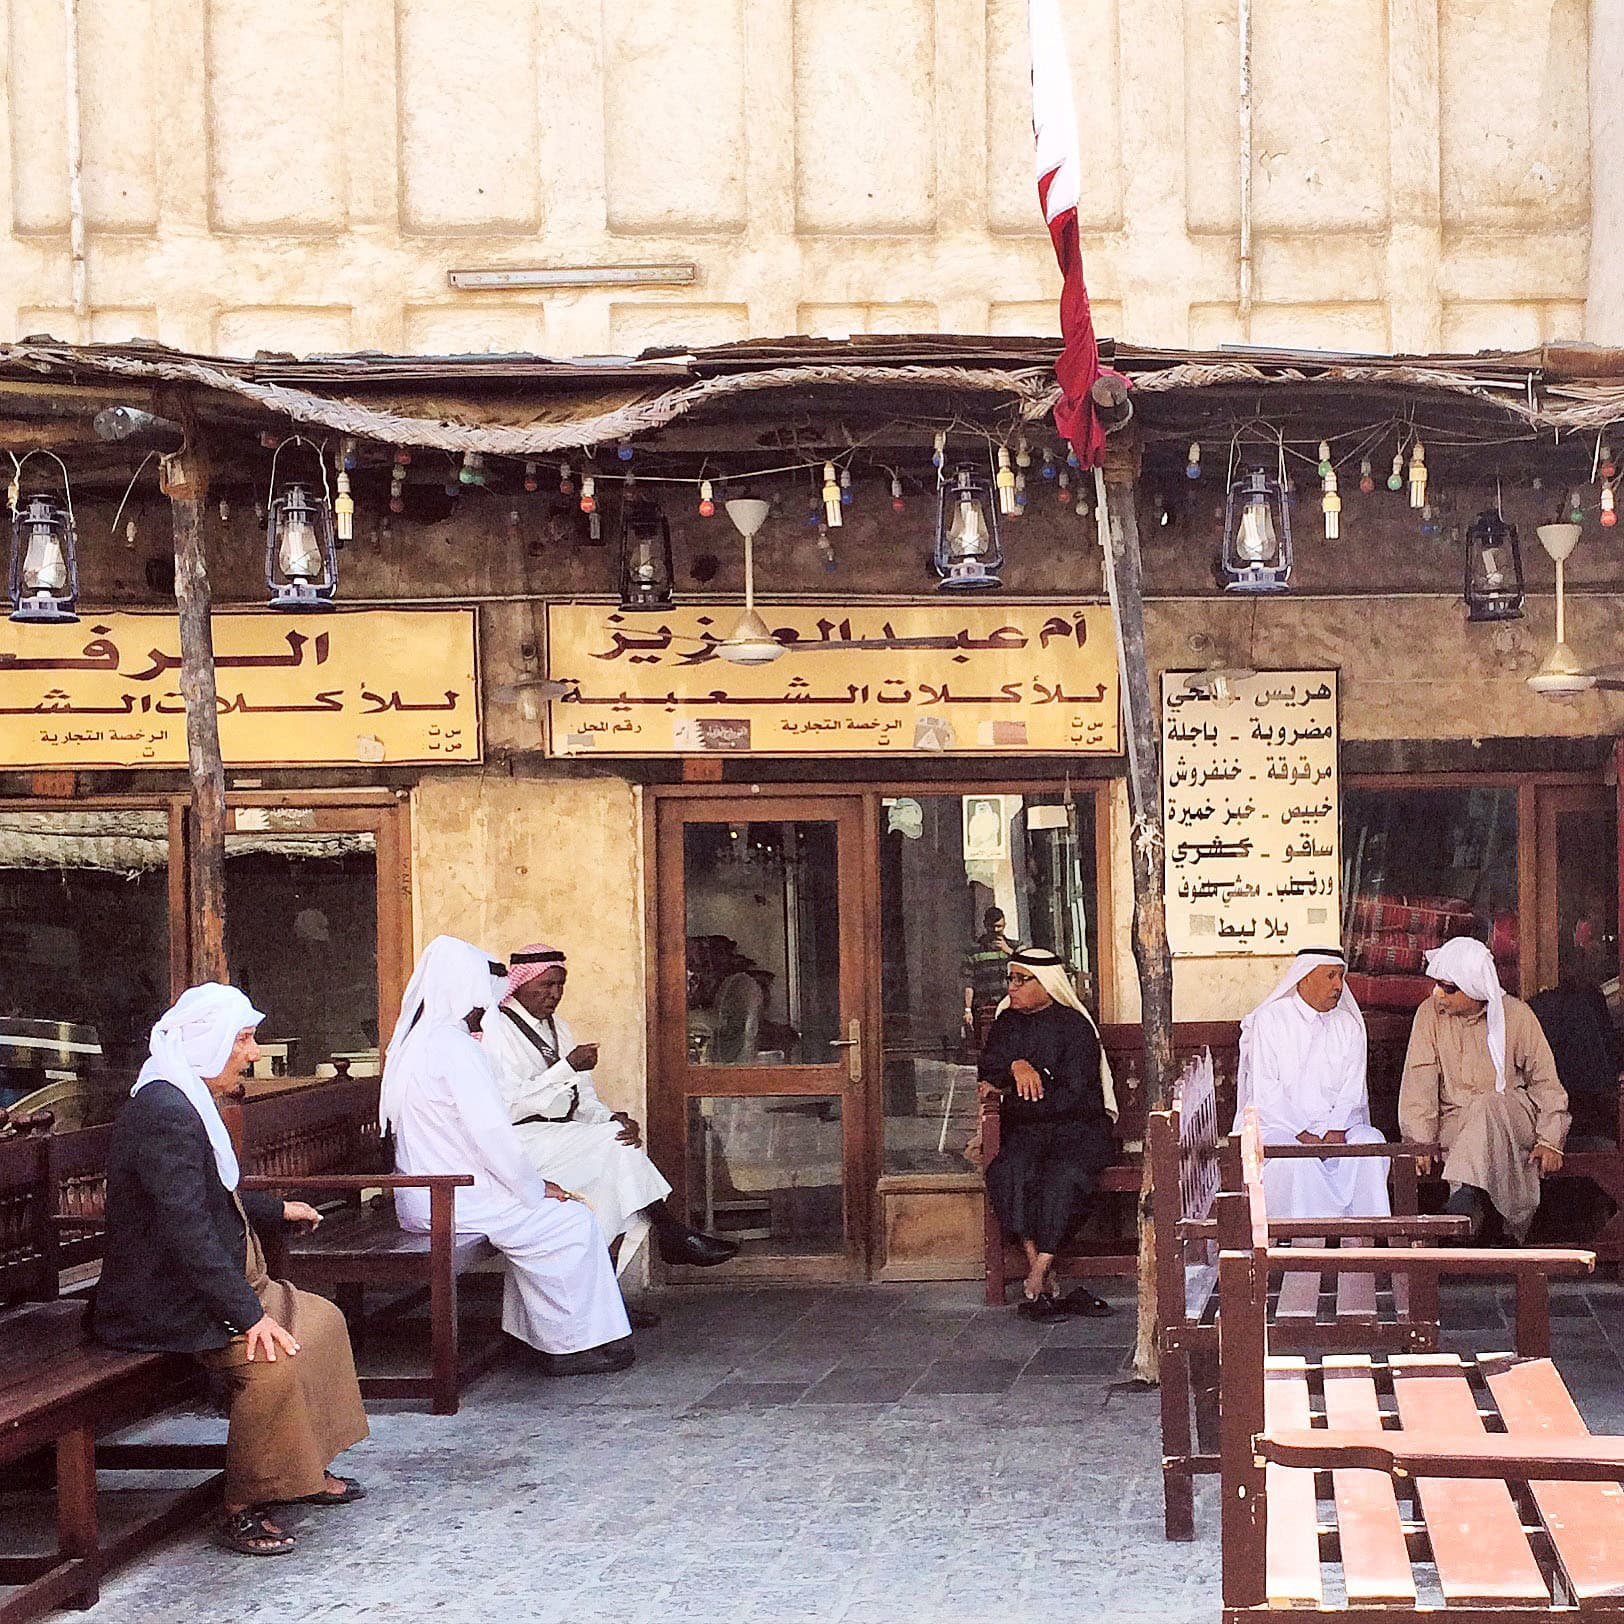 Locals having a chitchat at the Souq Waqif.